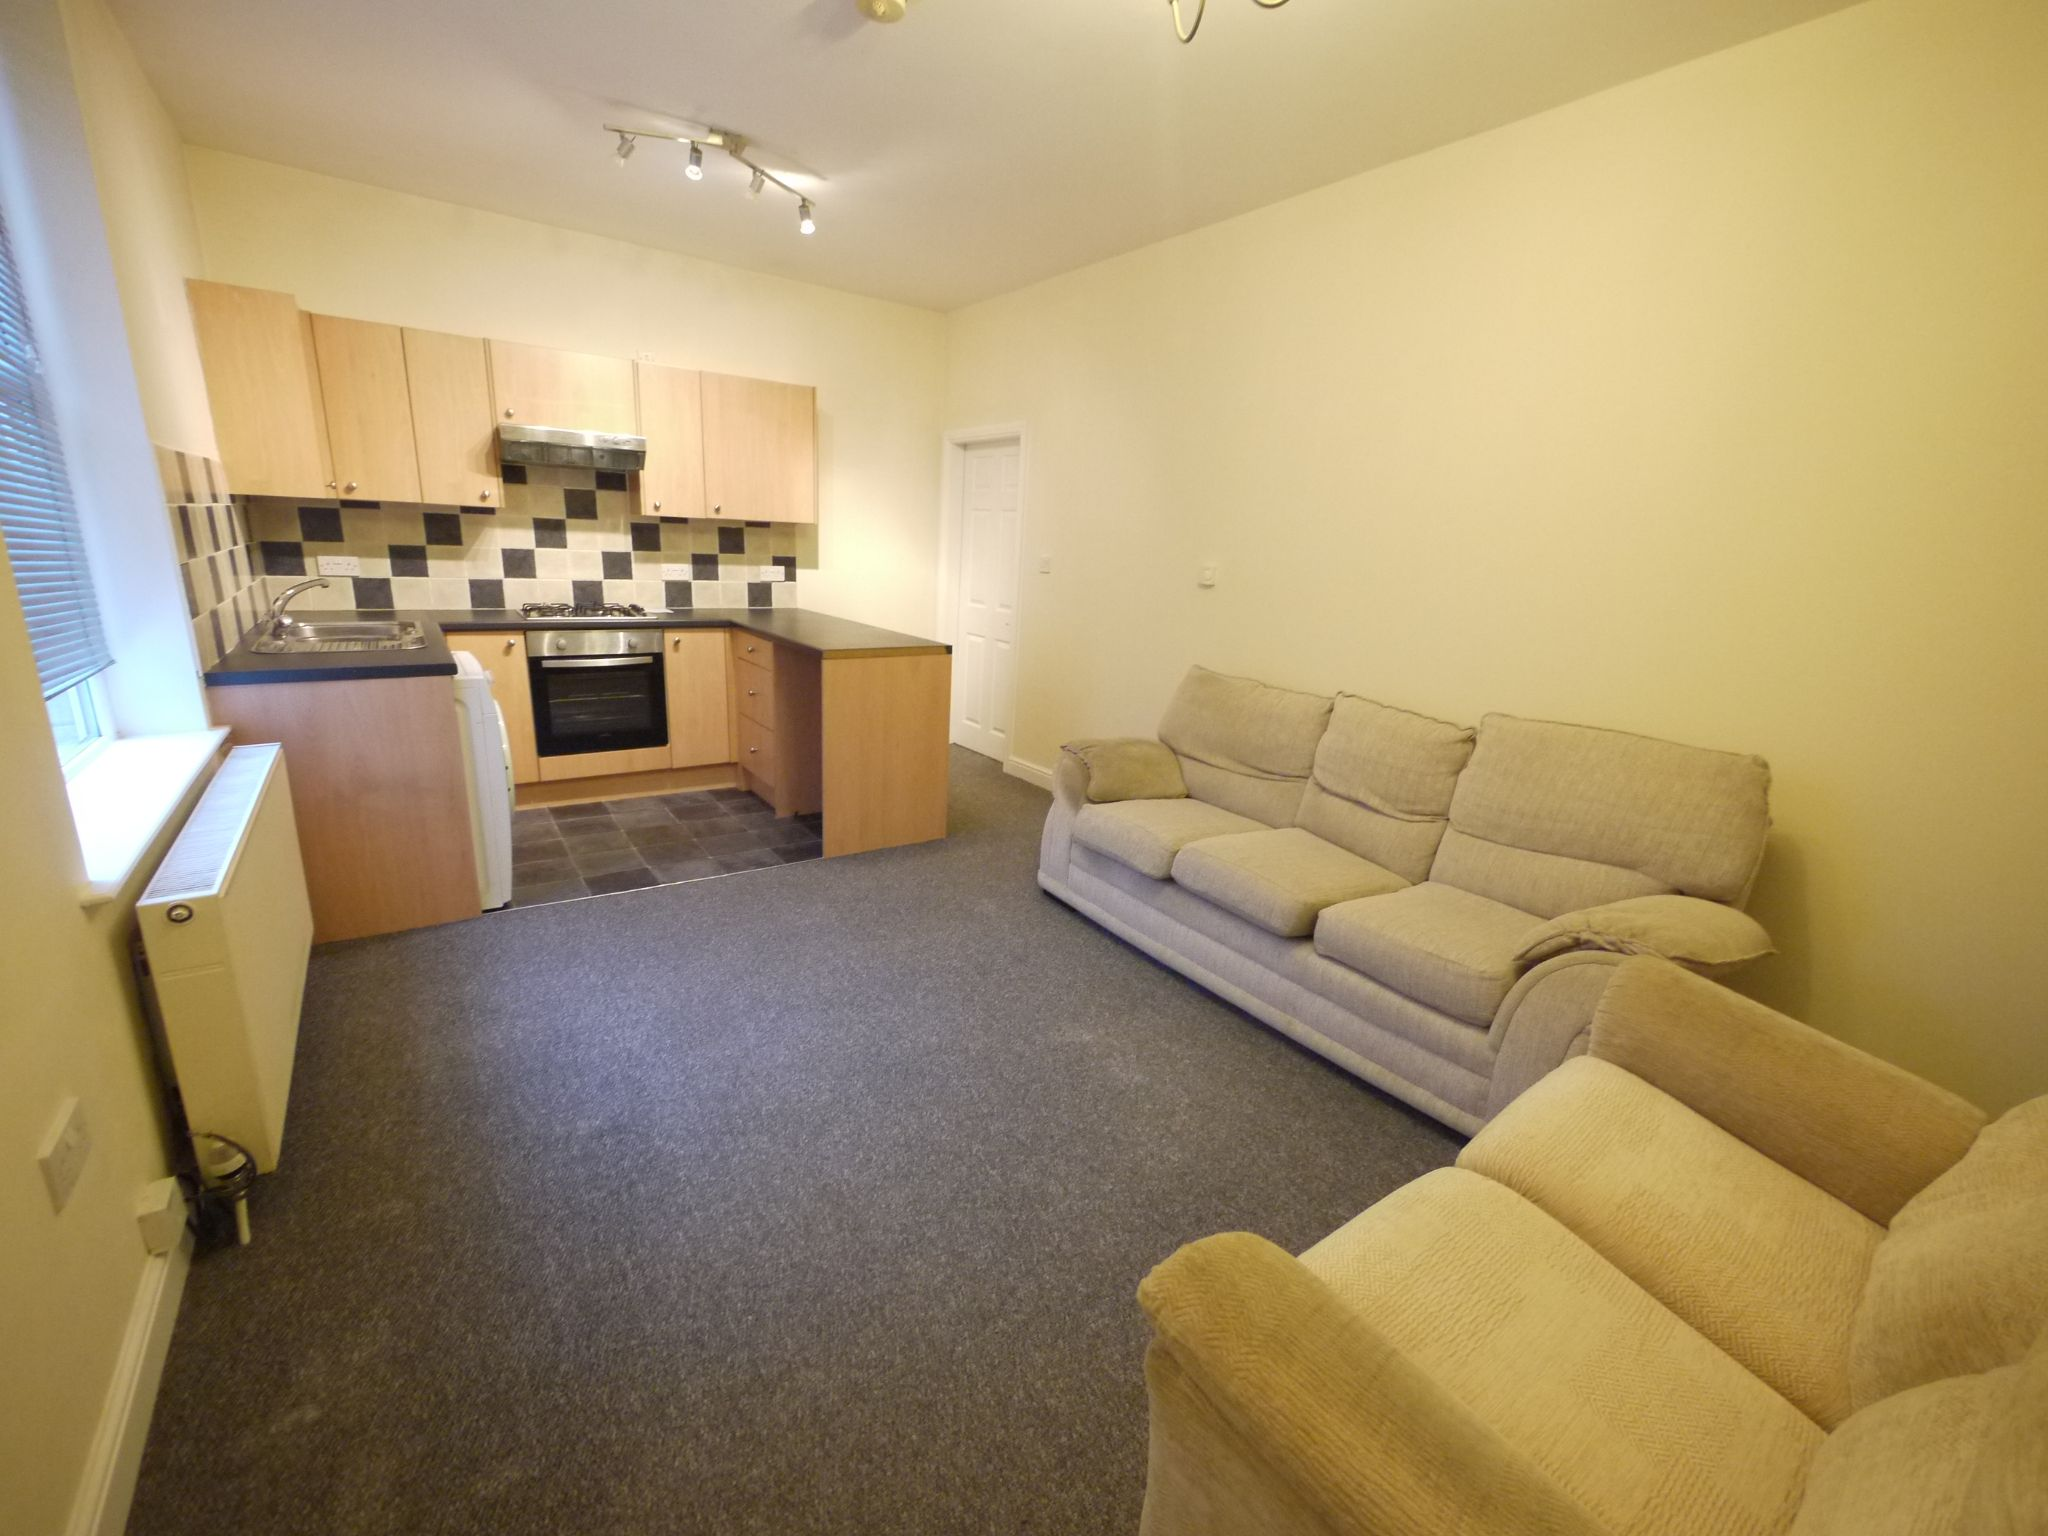 2 bedroom mid terraced house SSTC in Brighouse - Photograph 4.